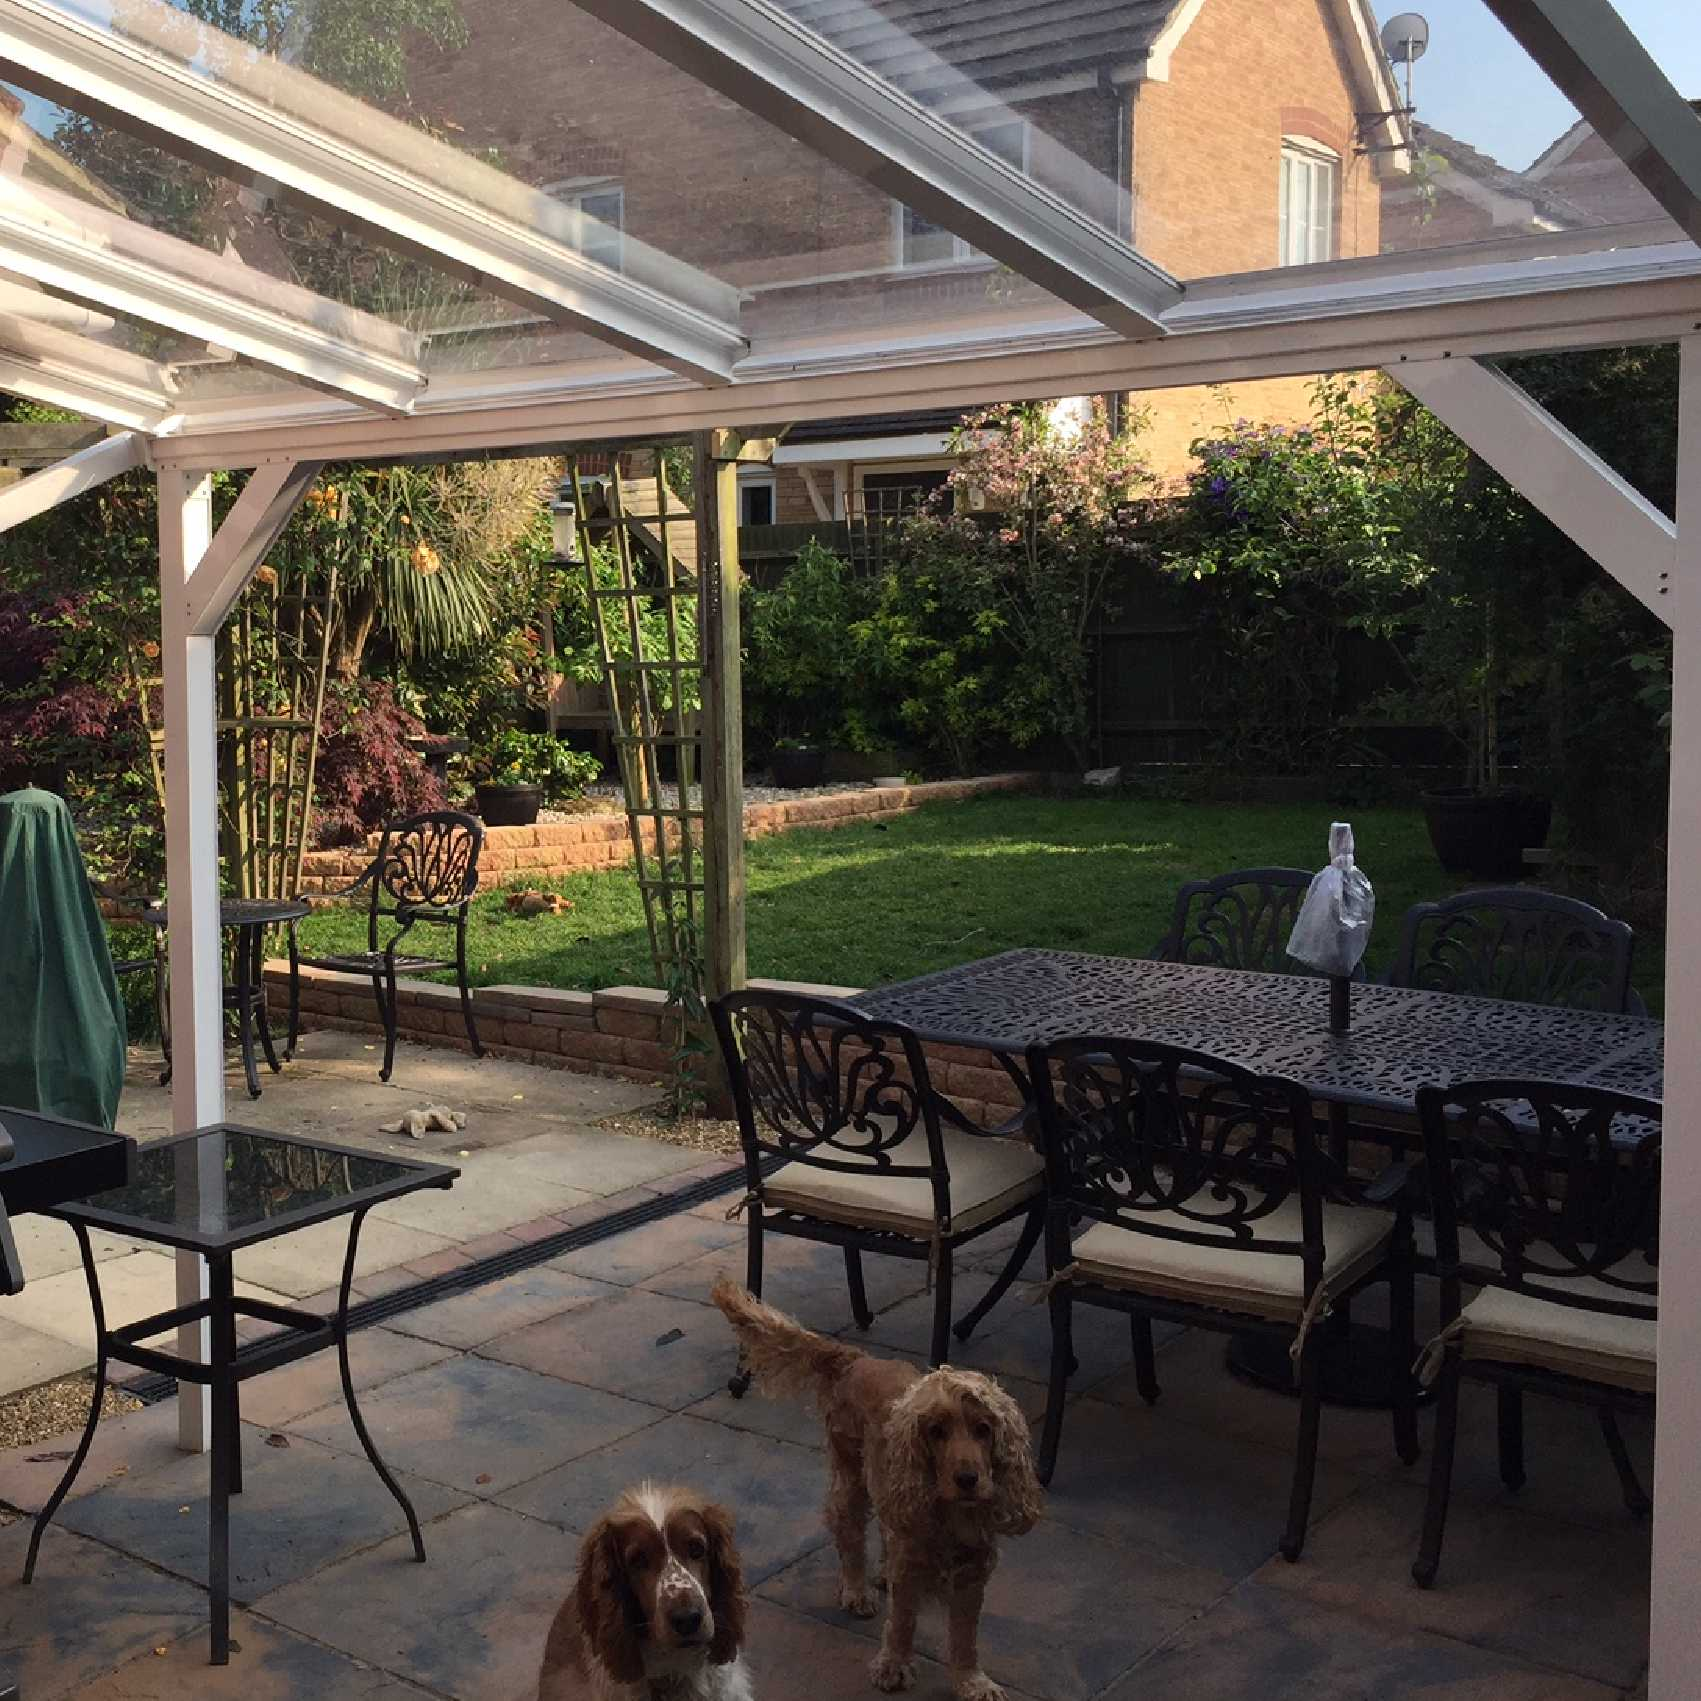 Affordable Omega Smart Lean-To Canopy with 6mm Glass Clear Plate Polycarbonate Glazing - 6.3m (W) x 1.5m (P), (4) Supporting Posts